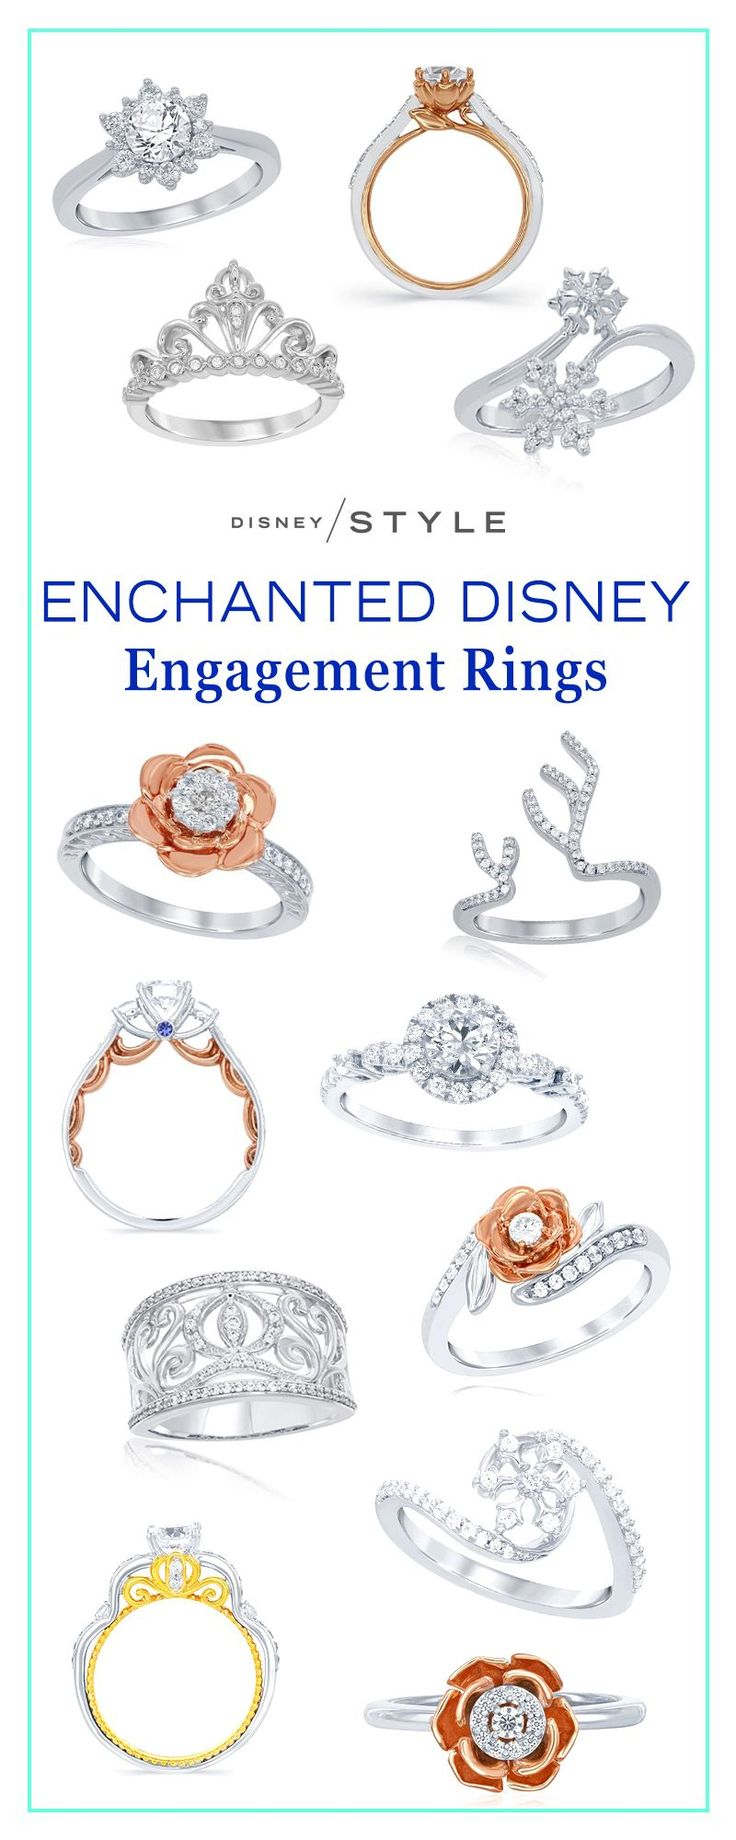 The new Enchanted Disney engagement rings are truly magical! | Disney Weddings diamond rings with gold + rose gold accents inspired by Cinderella, Belle, and Elsa. | [ http://di.sn/60028DmZs ]